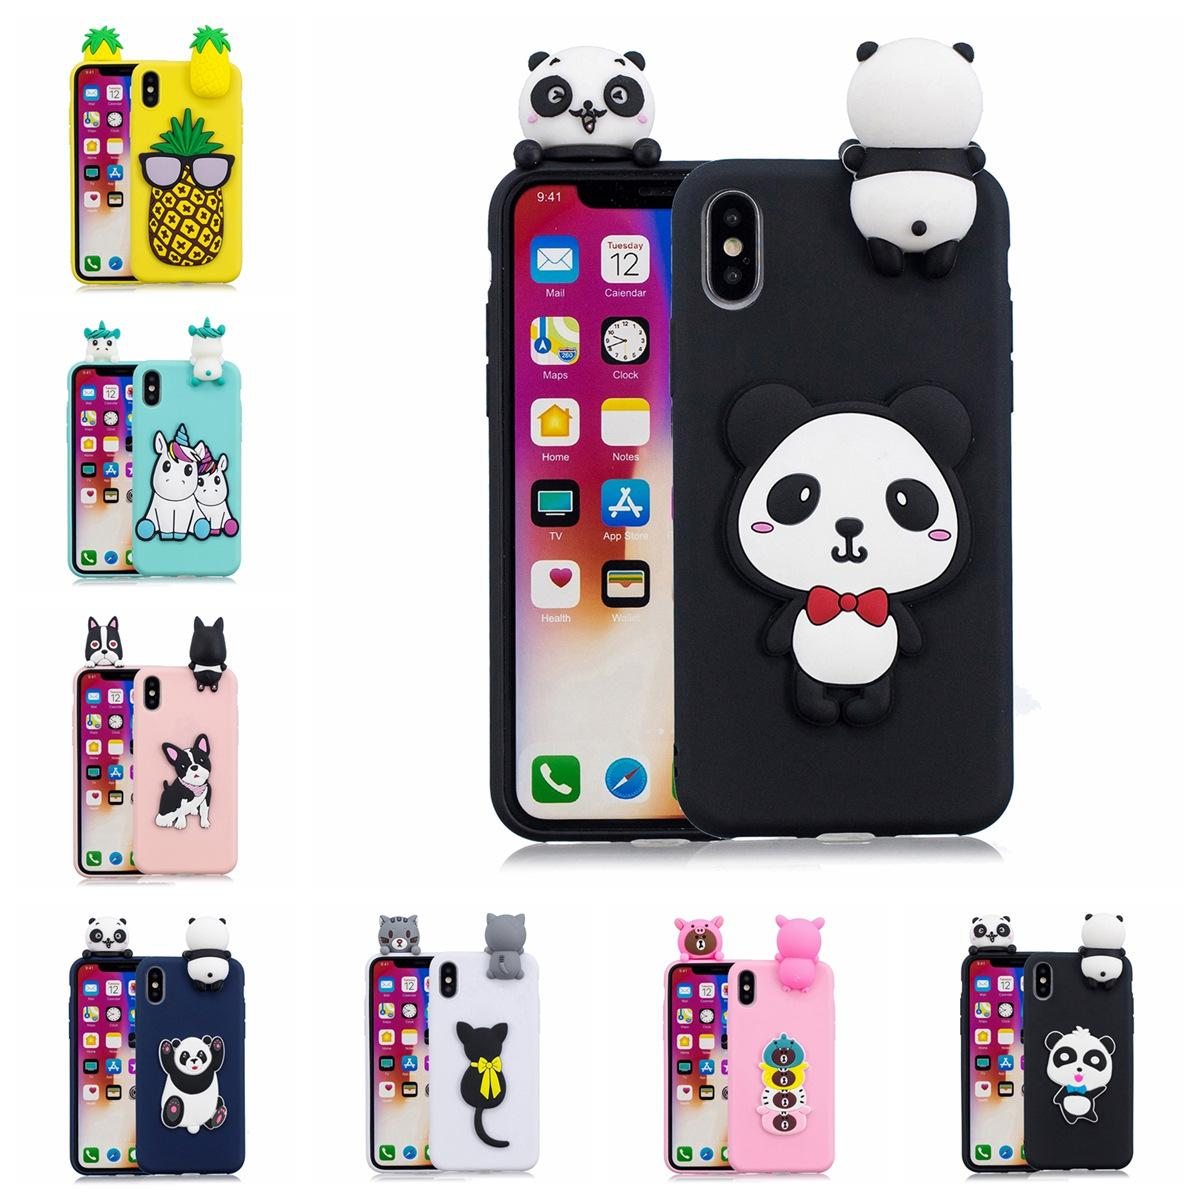 TPU Phone Case Cover for iPhone X Pasted 3D Funny Animal Panda Sticking a  Little Doll 61 Models Option